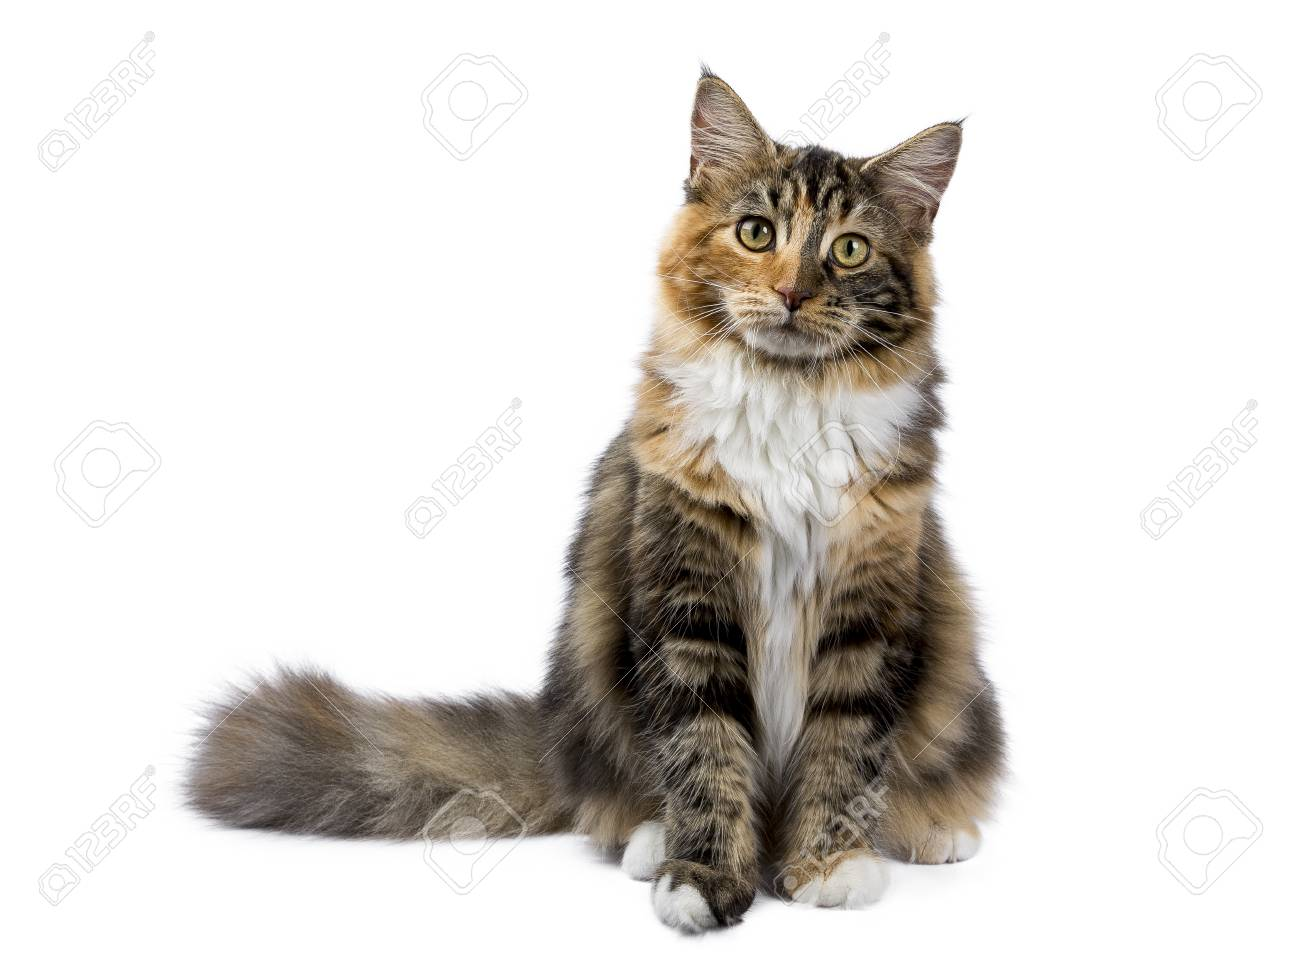 Young Maine Coon cat / kitten sitting isolated on white background - 81070587